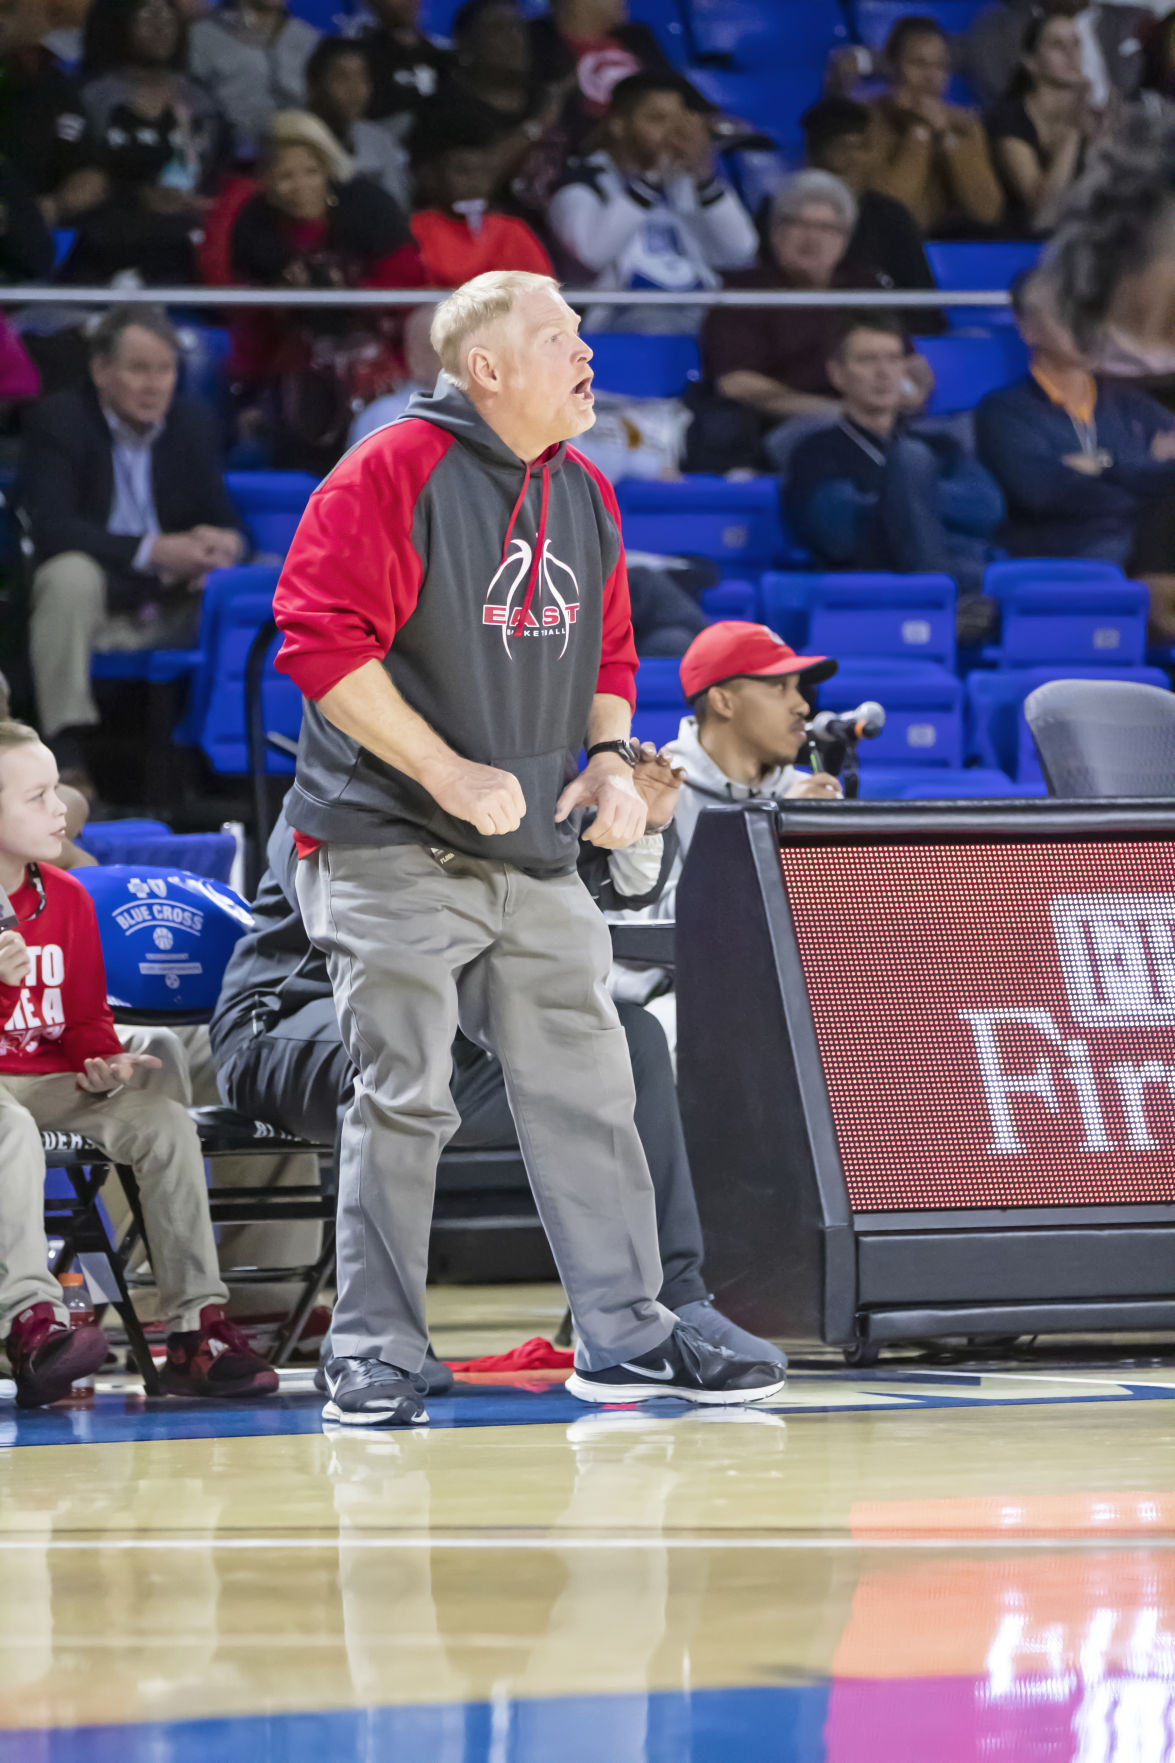 East Nashville coach Jim Fey yells out a play for the Eagles on the floor.jpg